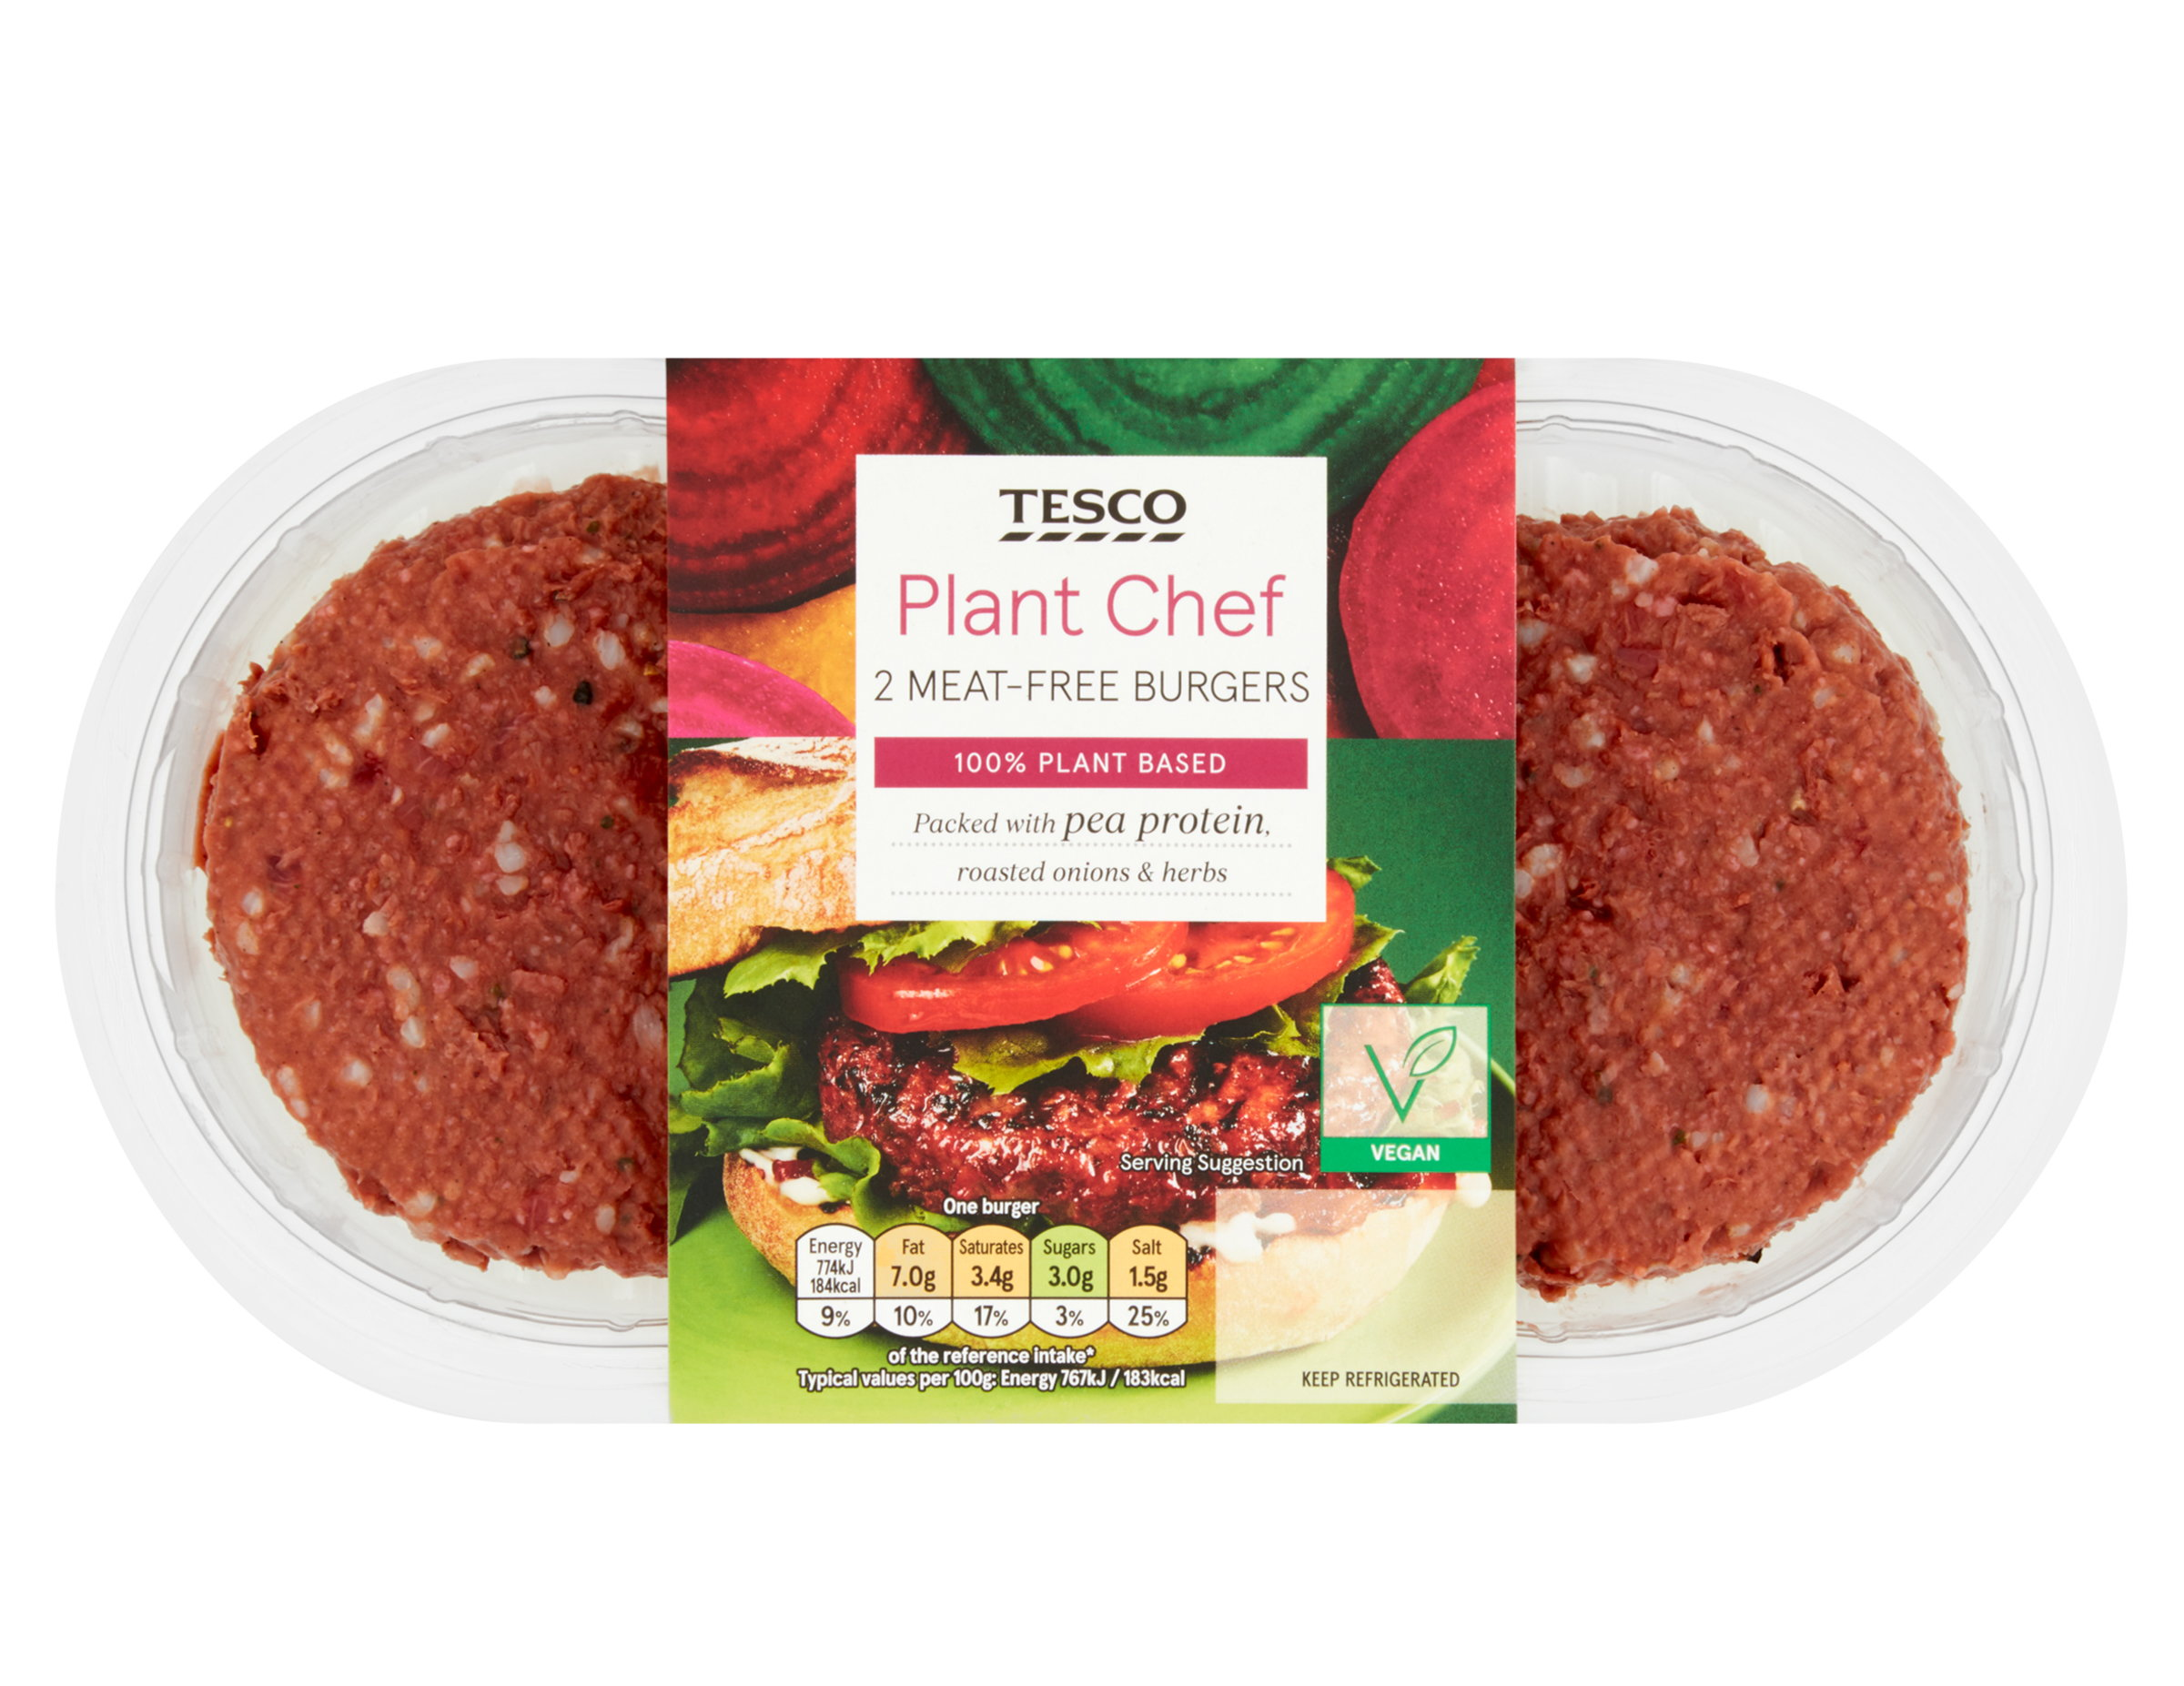 Tesco Plant Chef Meat-free BurgersPacked with pea protein, roasted onions and herbs